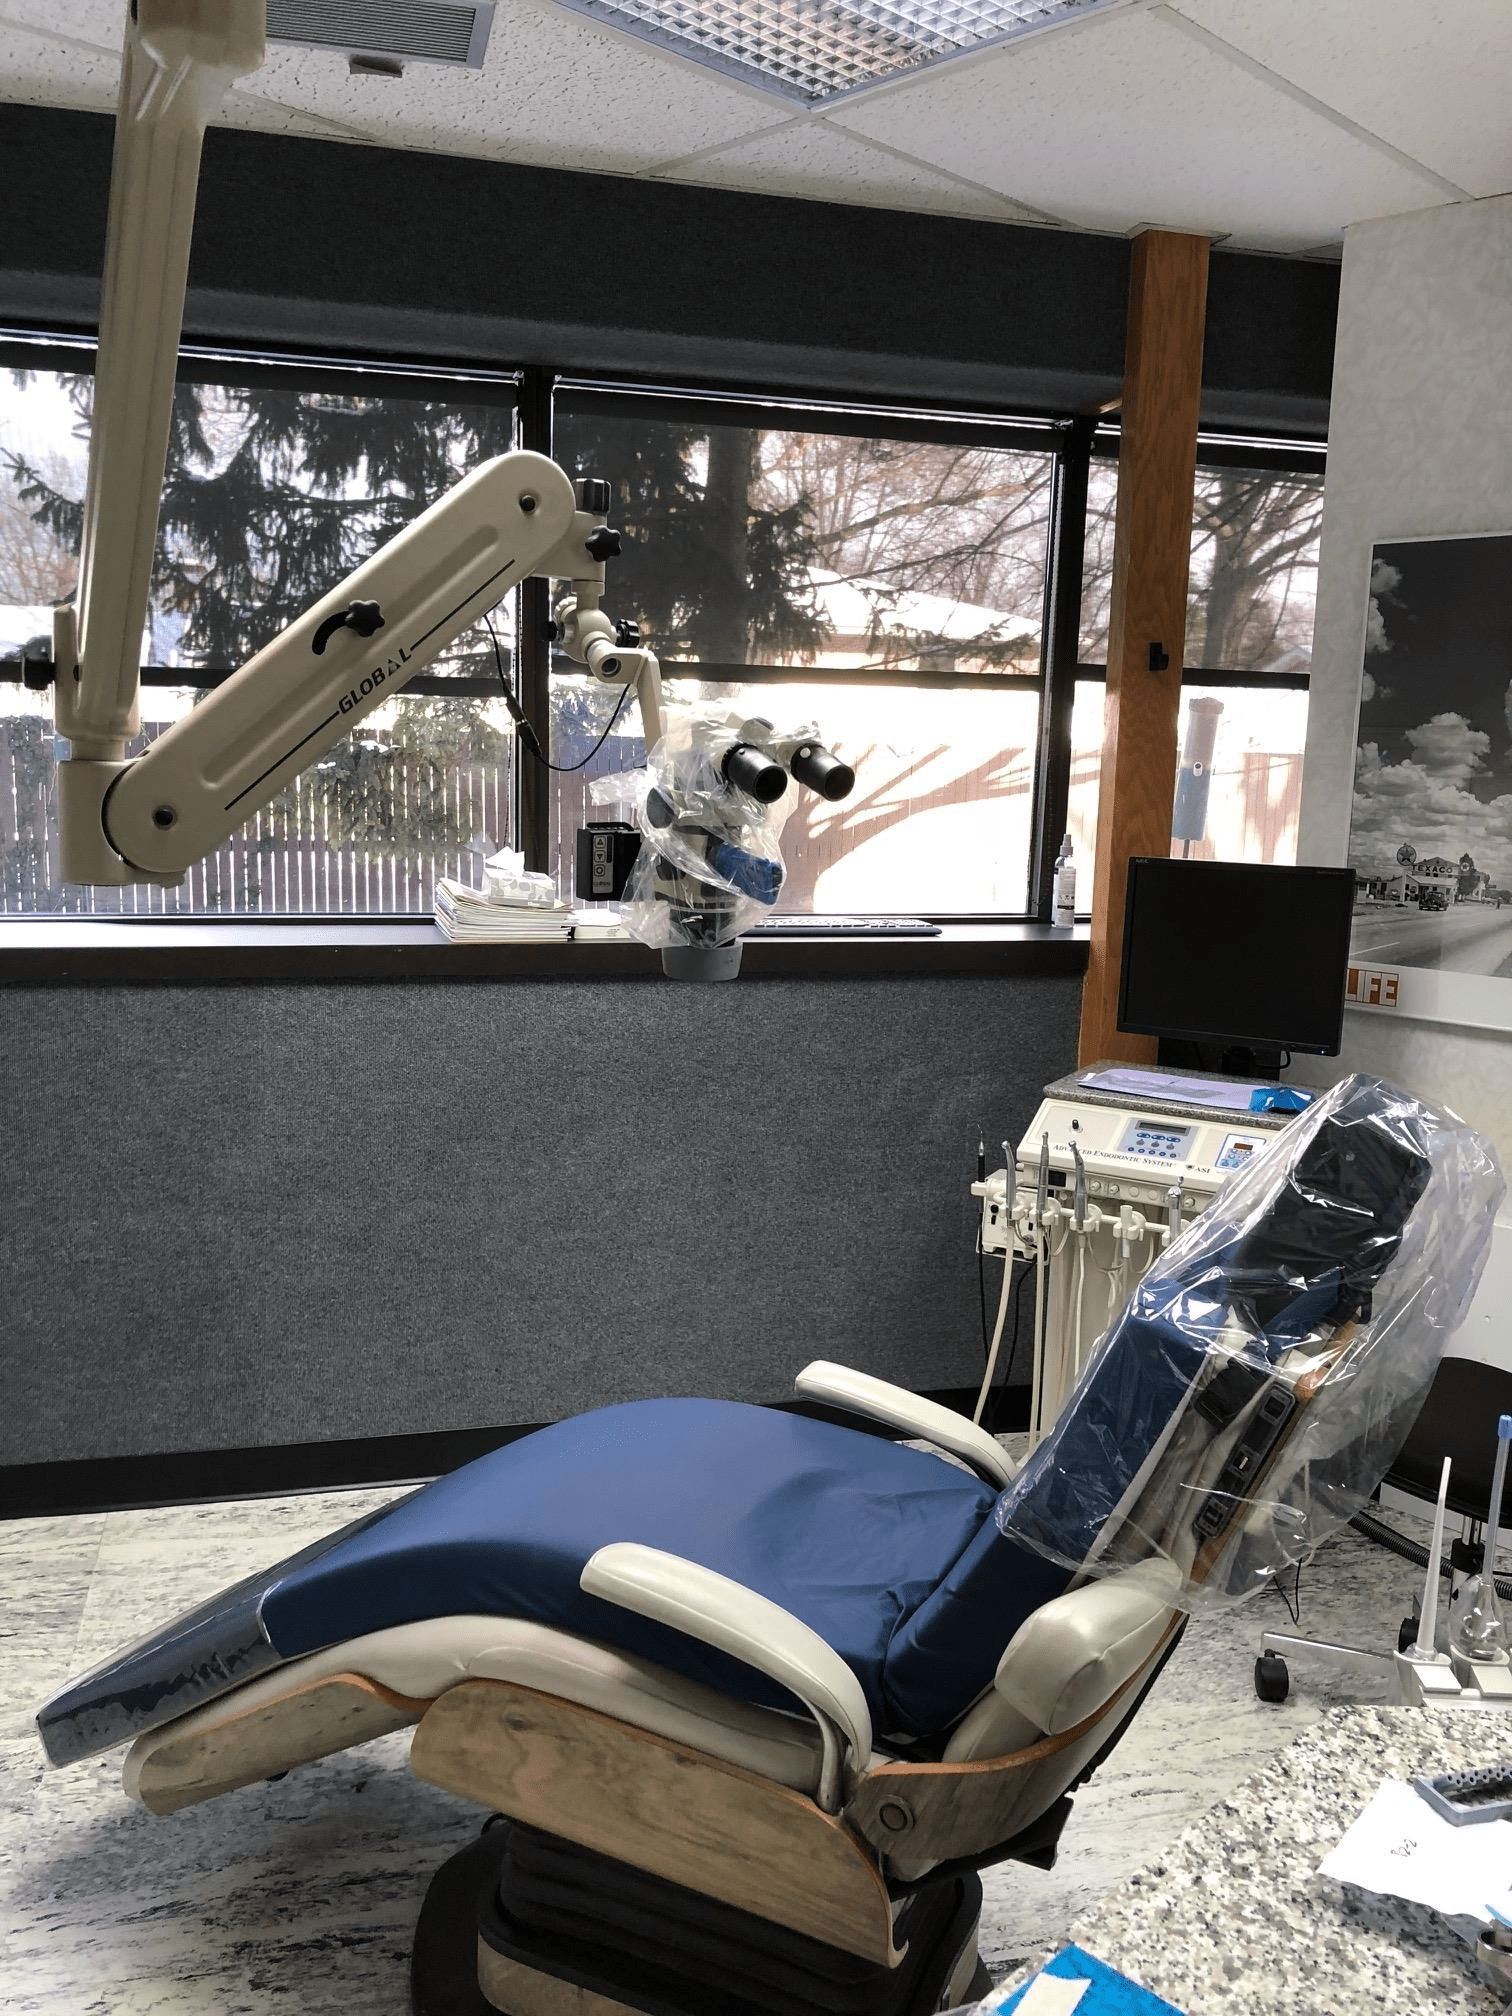 Operatory with a Window